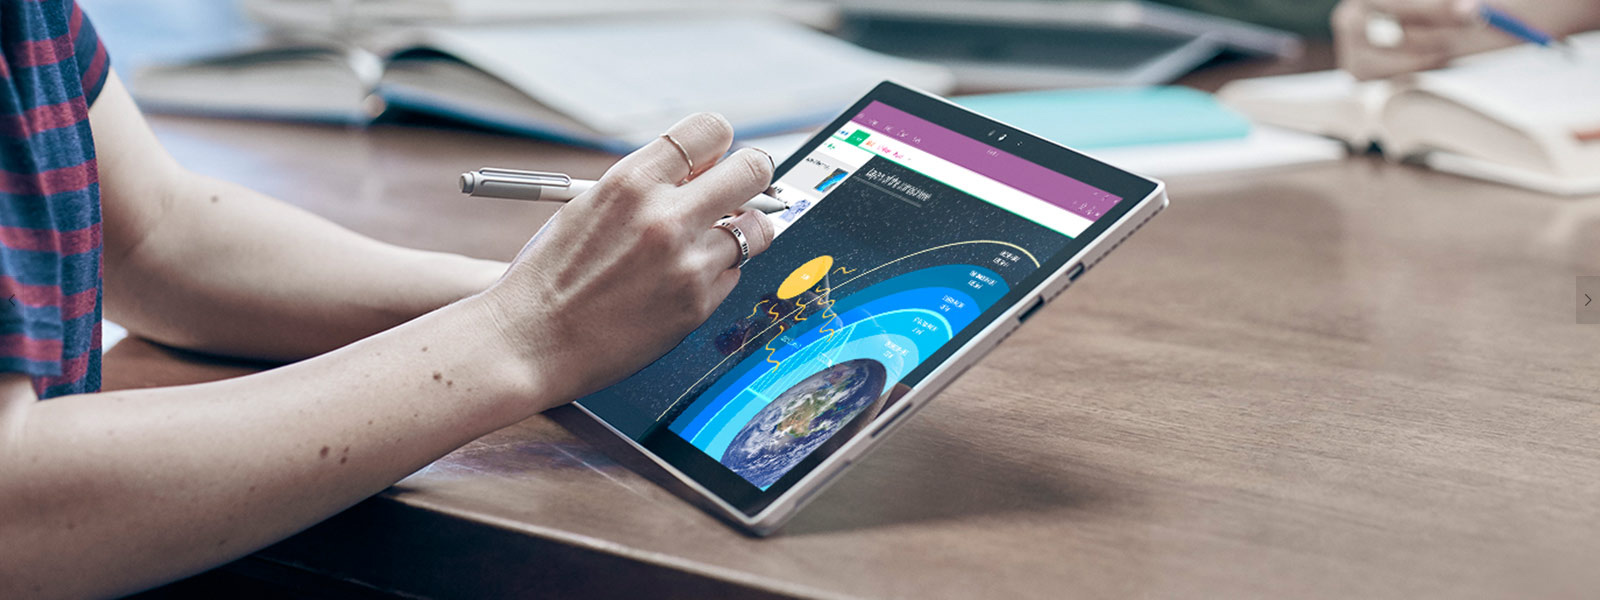 Una persona usa la Penna per Surface sullo portatile Surface in modalità Tablet.